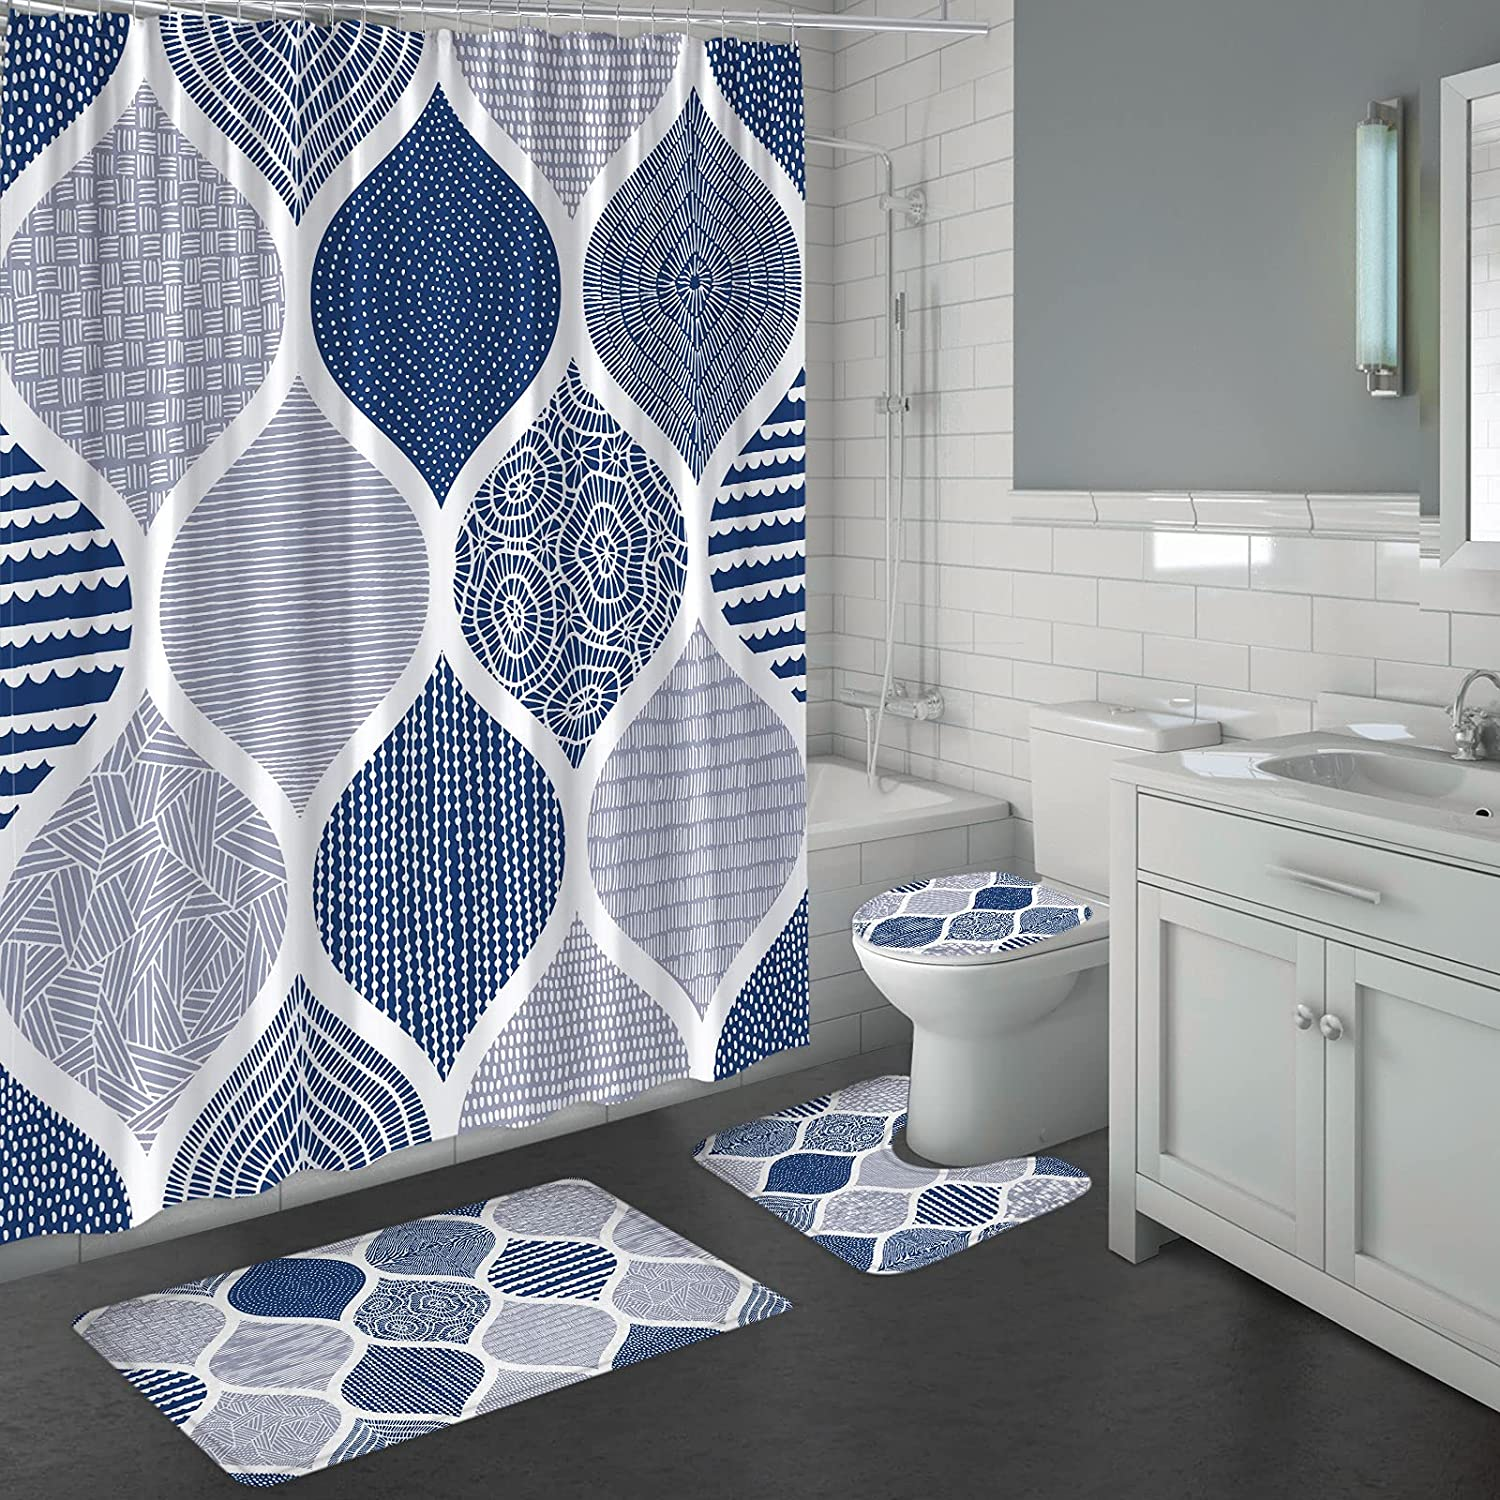 MitoVilla Blue Shower Curtain Sets with Rugs, Navy Blue Bathroom Sets with  Shower Curtain and Rugs and Accessories, 20 Pcs Boho Shower Curtain Sets, ...